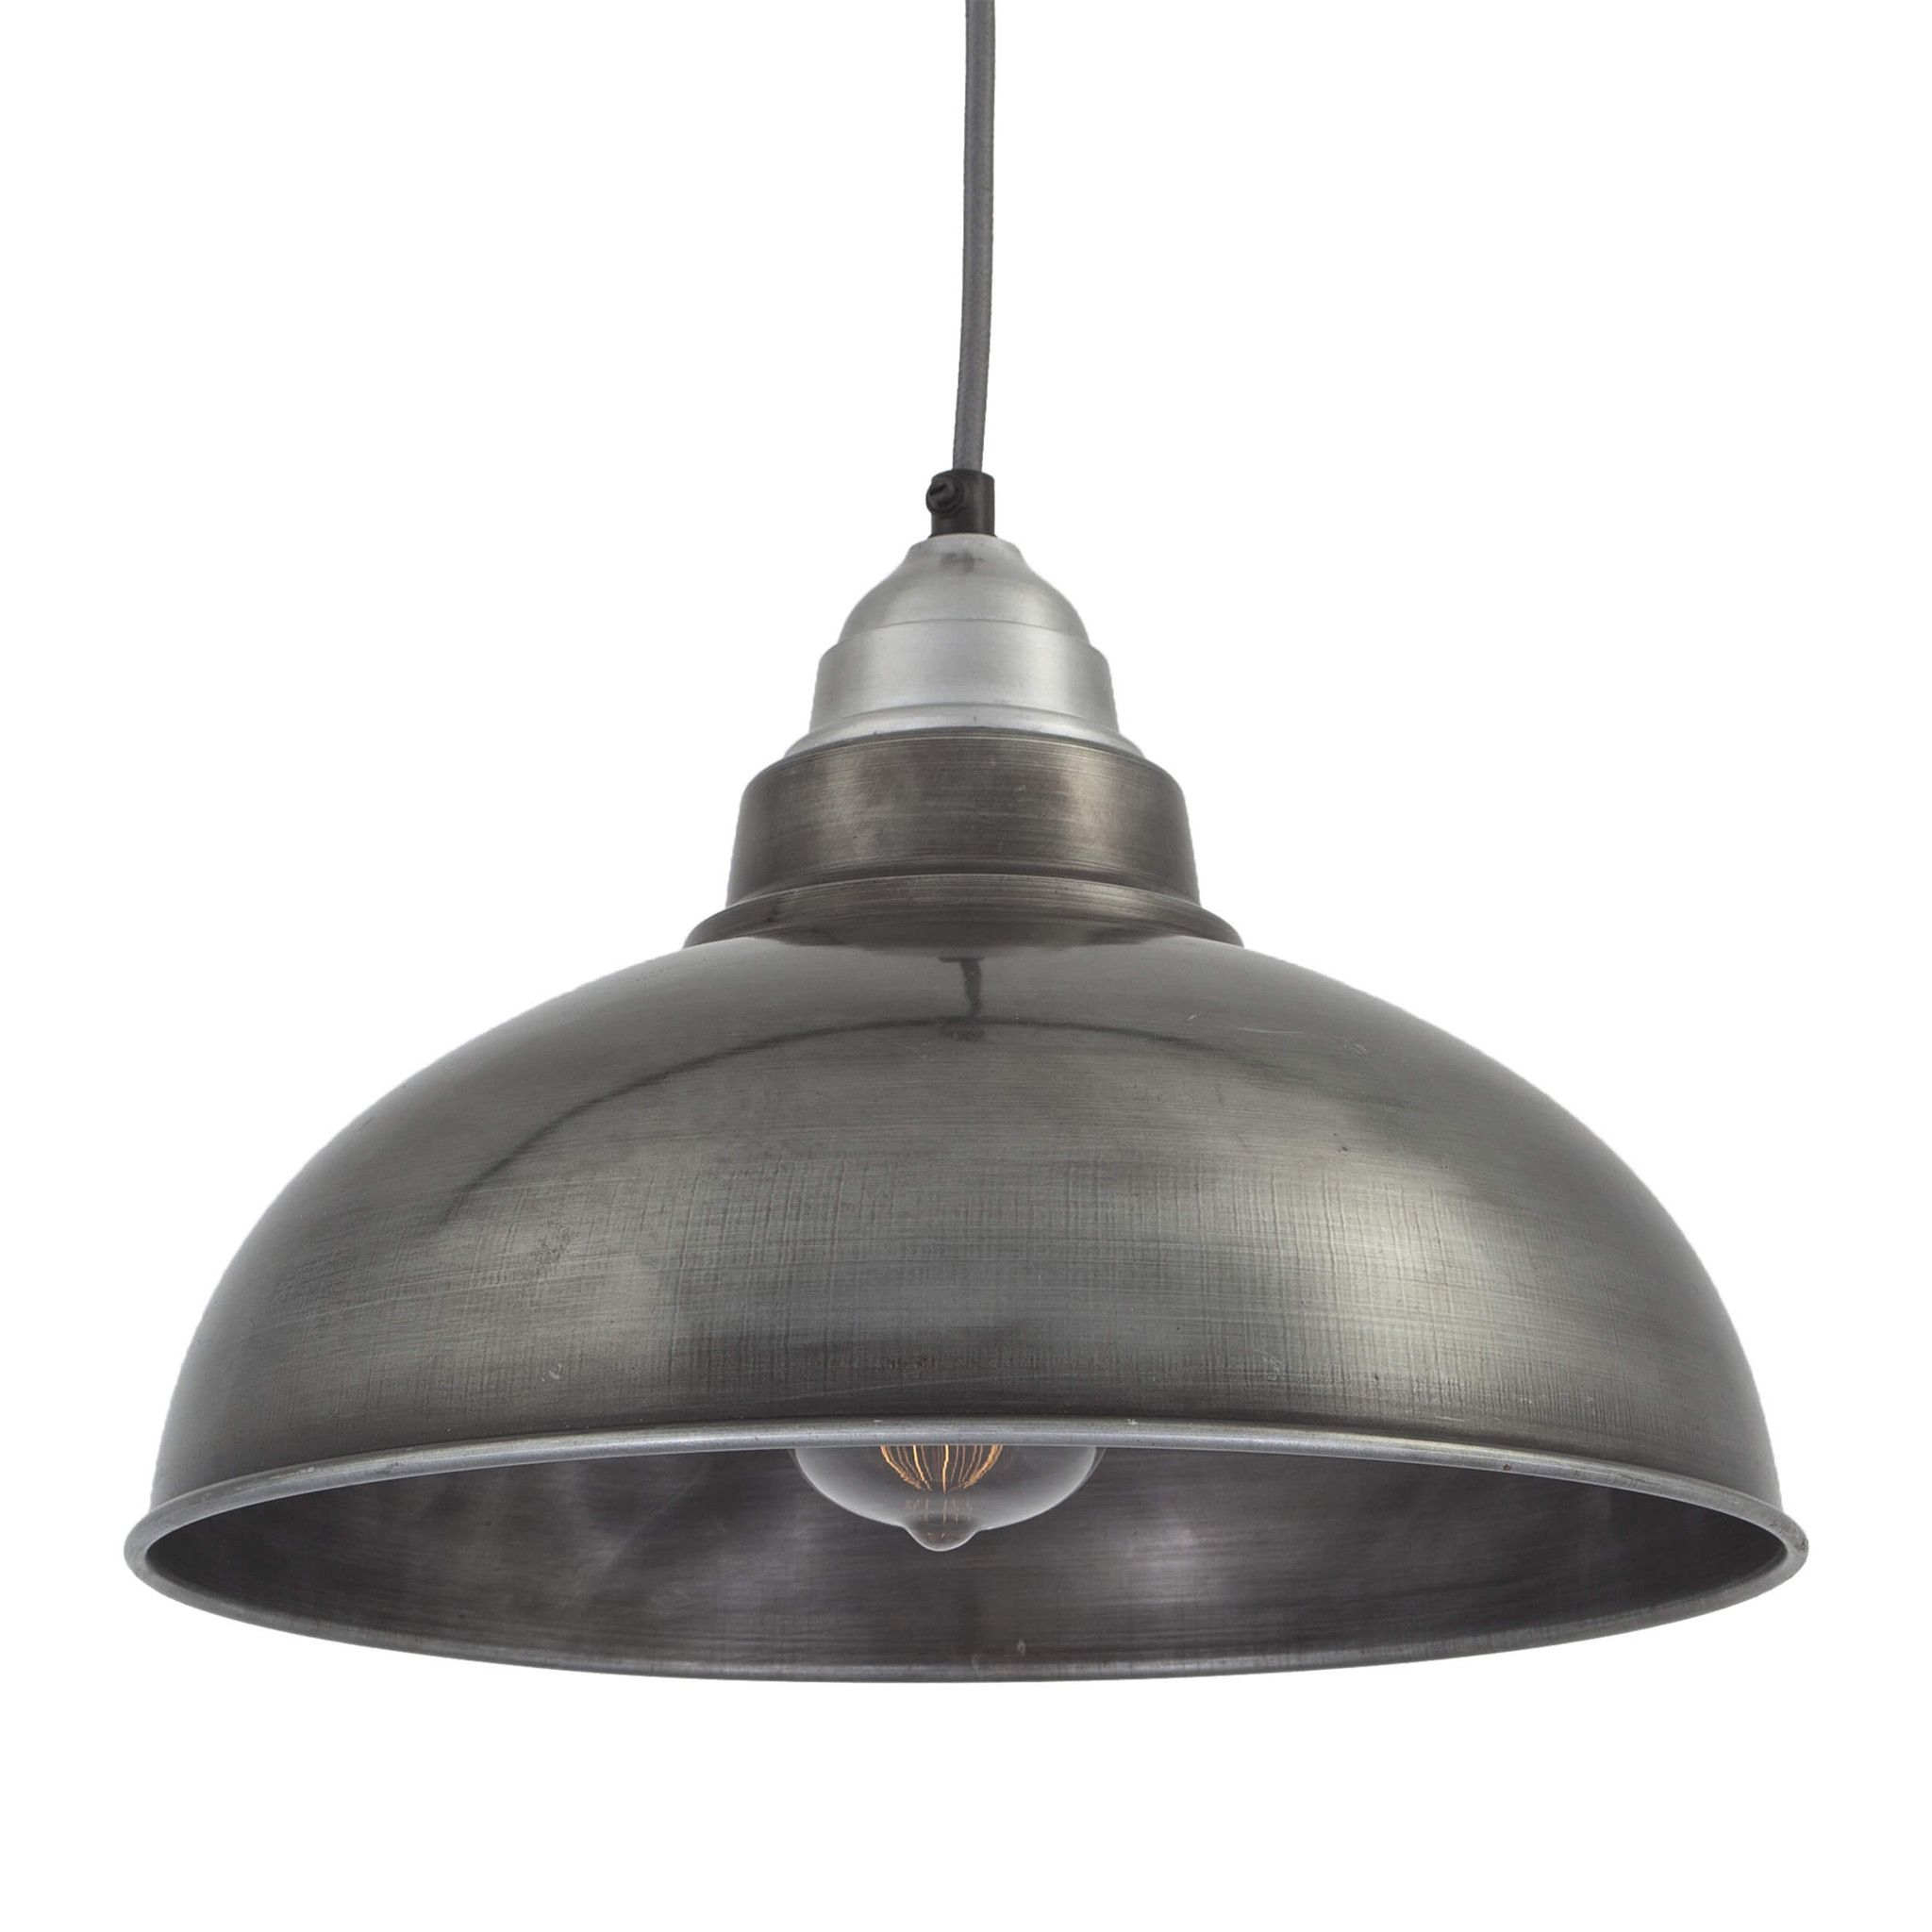 Old Industrial Pendant Light: Old Factory Pendant - 12 Inch - Pewter In 2019